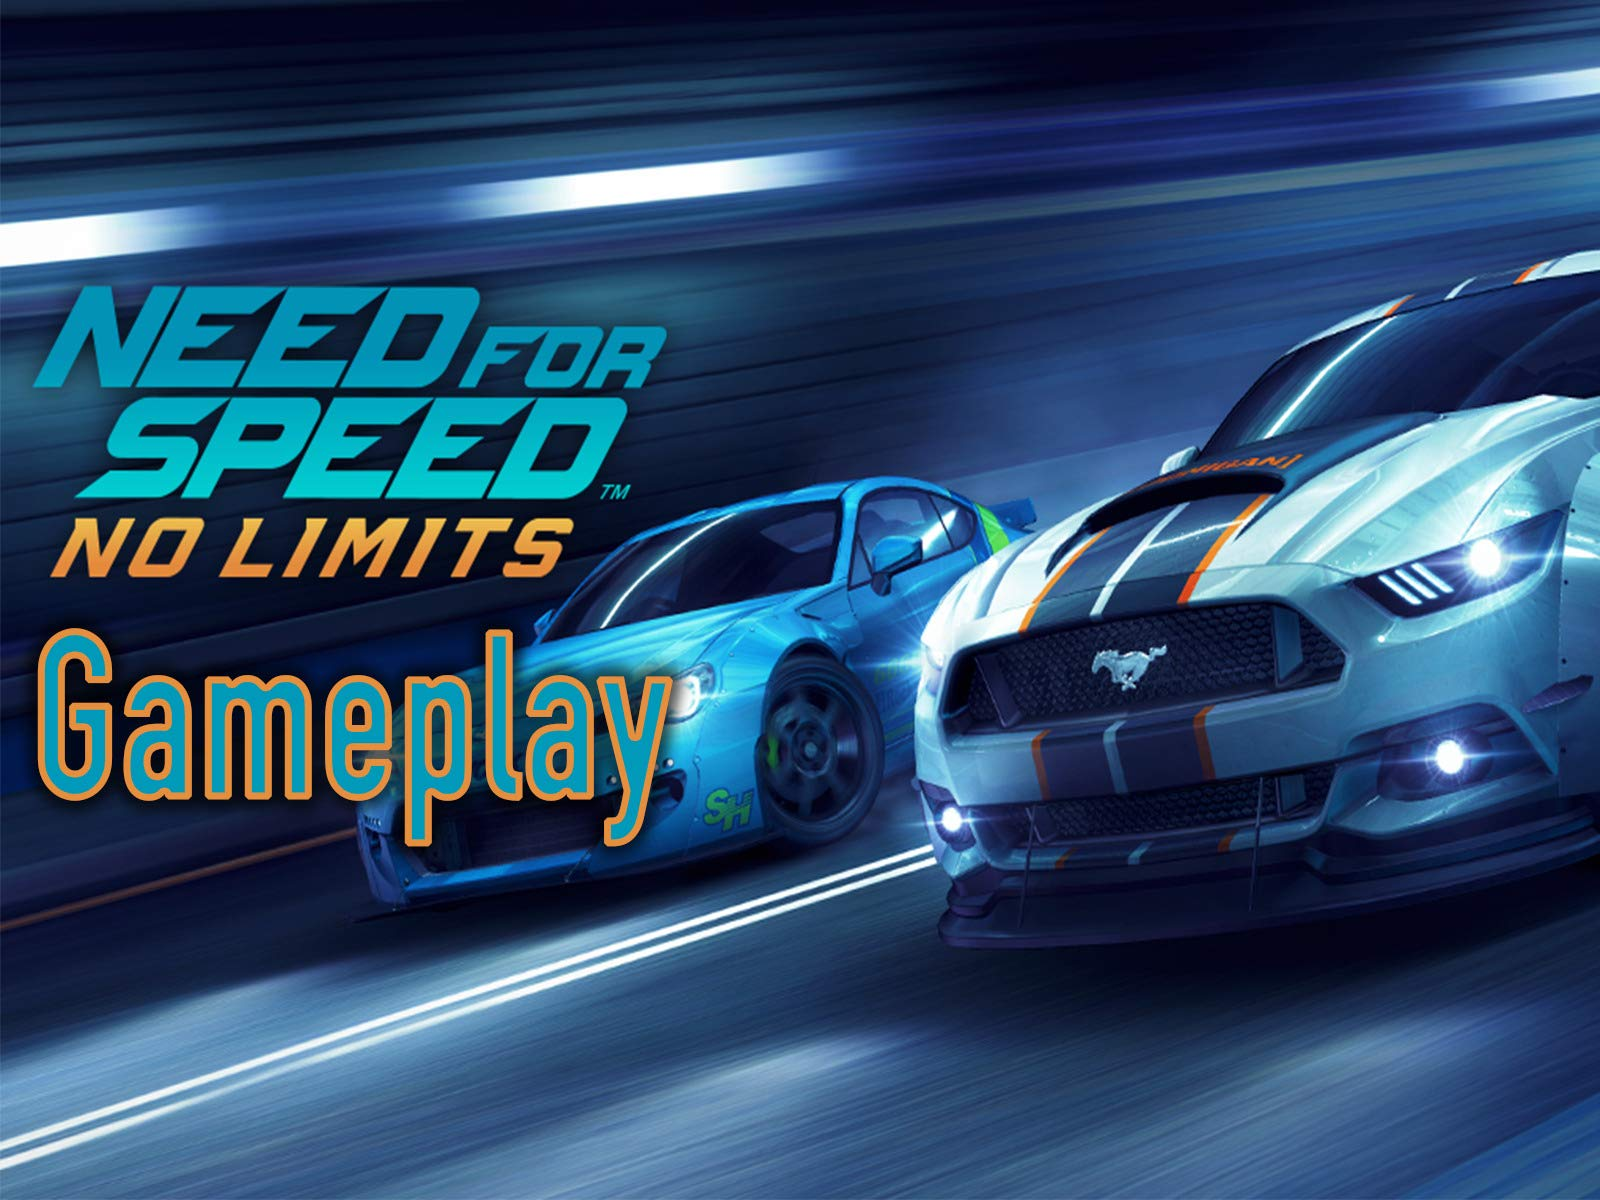 Need For Speed No Limits Gameplay